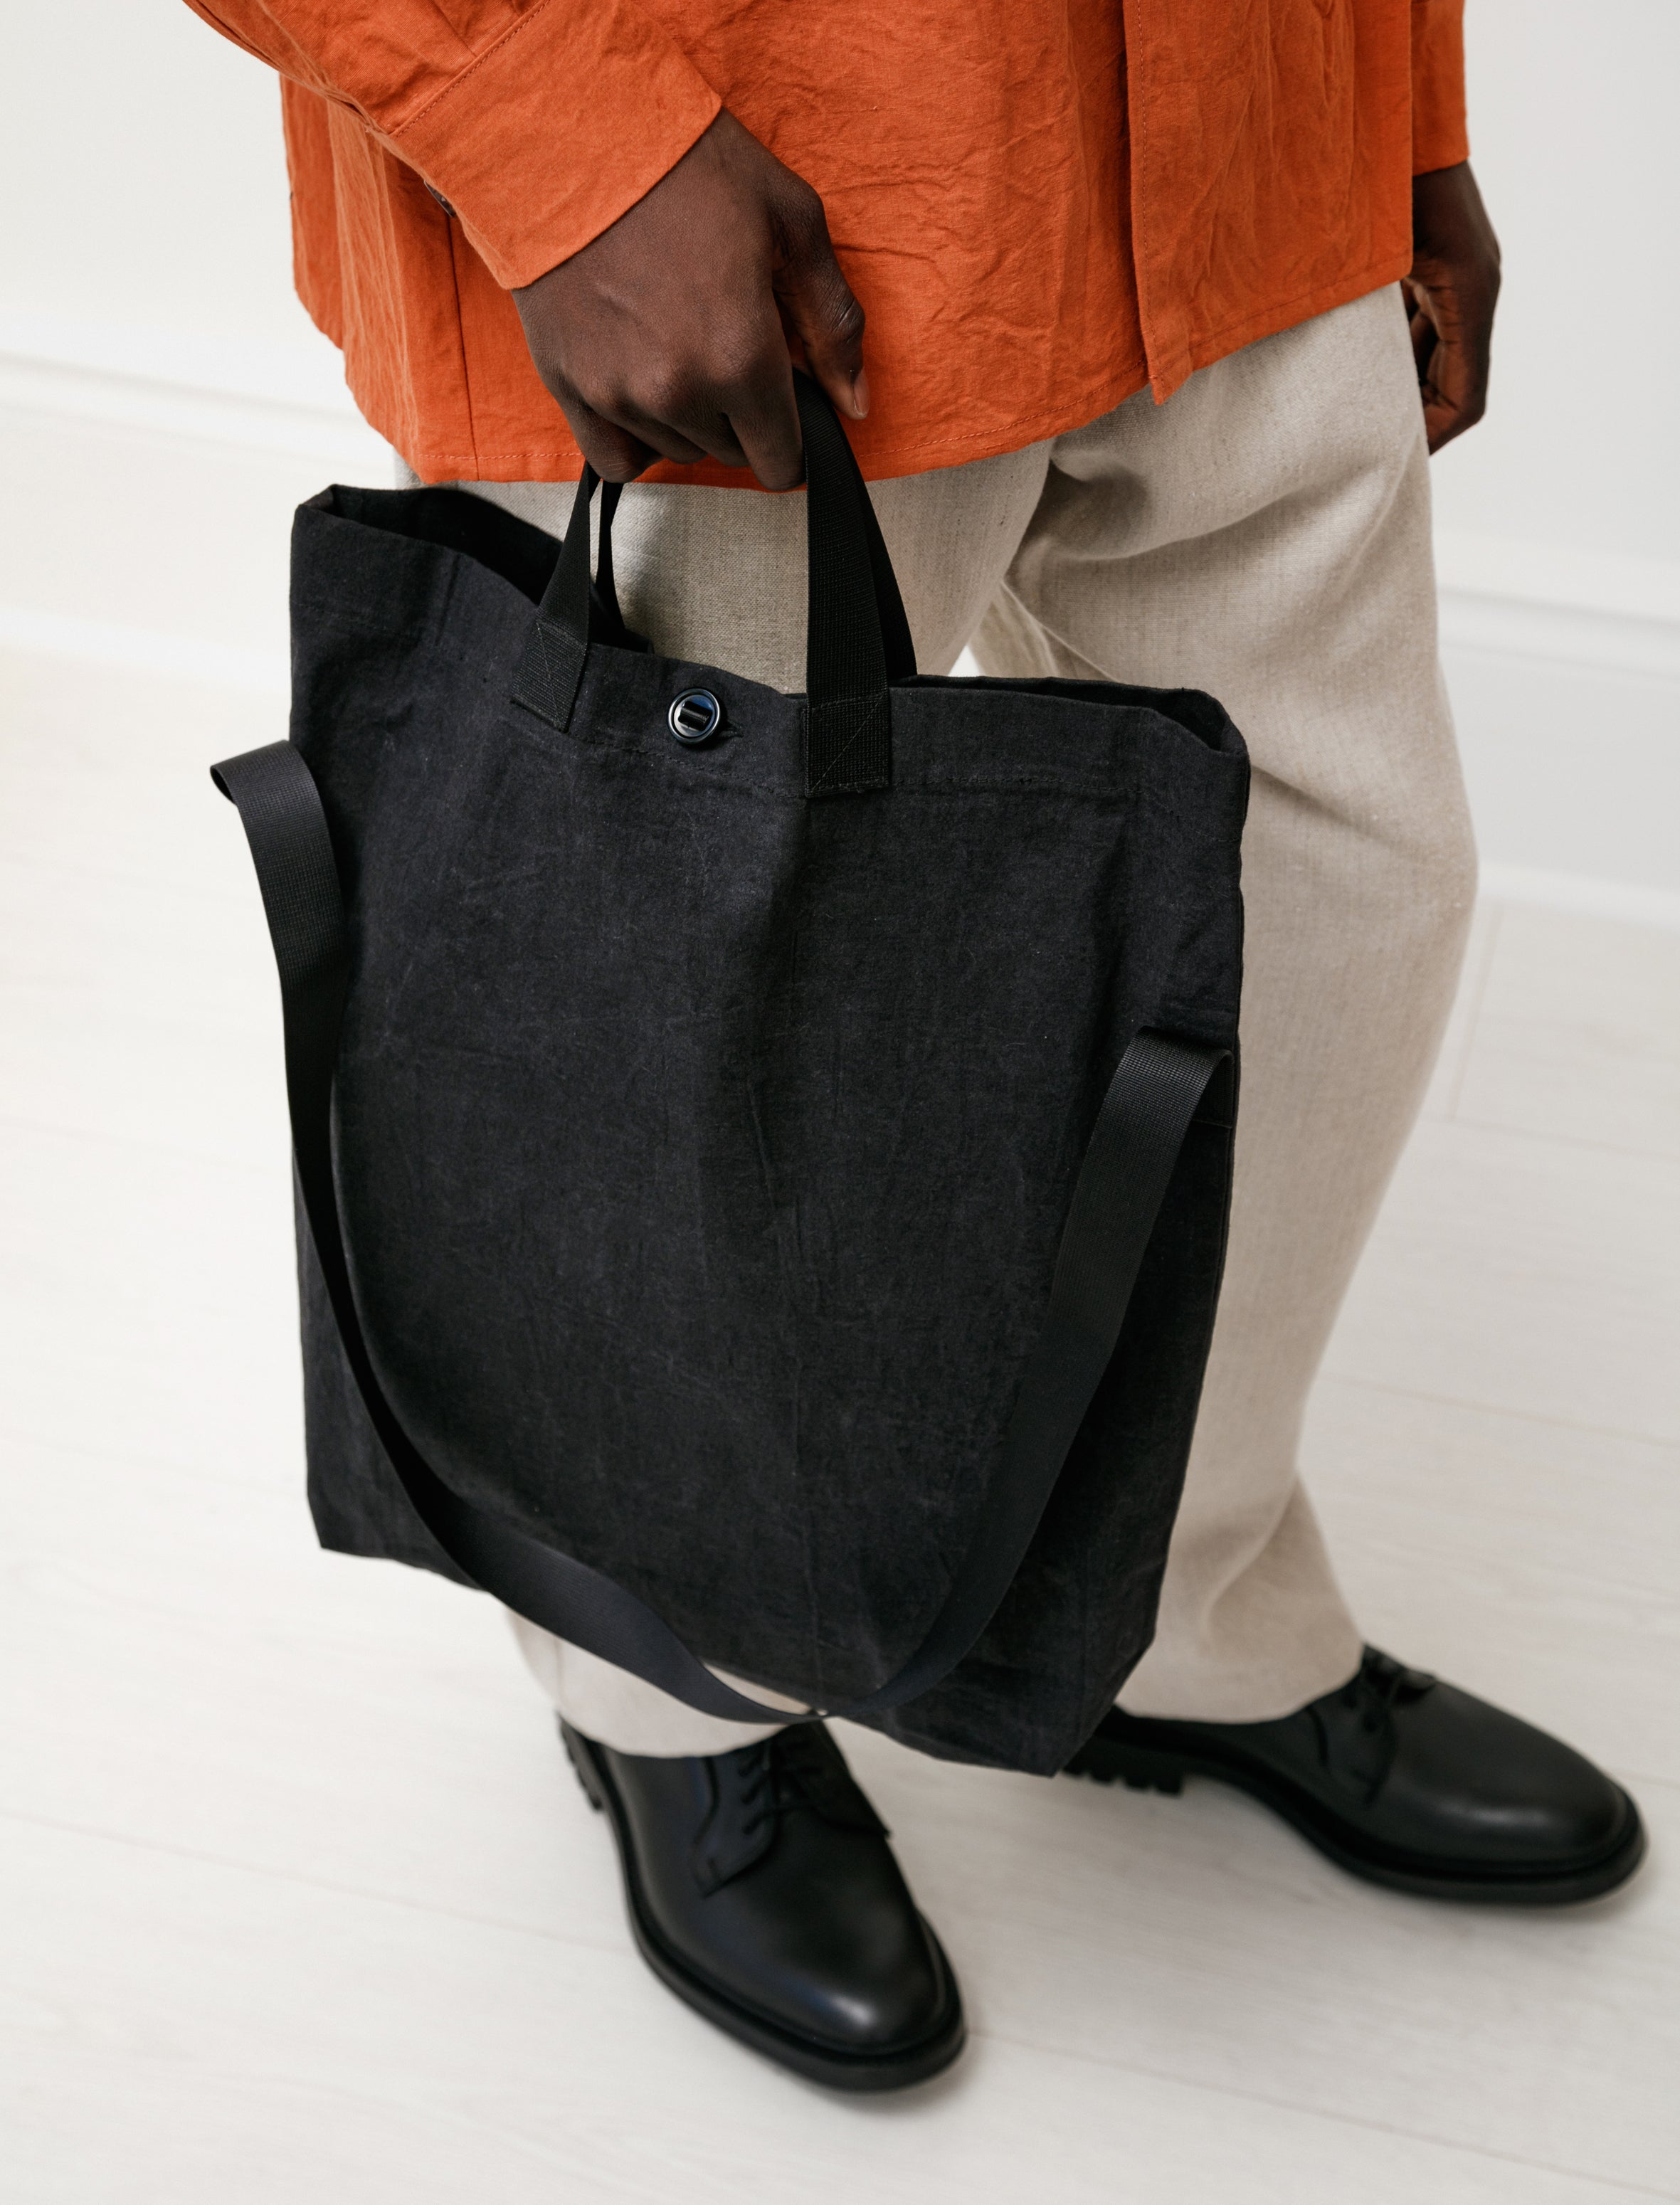 MAN-TLE Bag 1 Black Wax